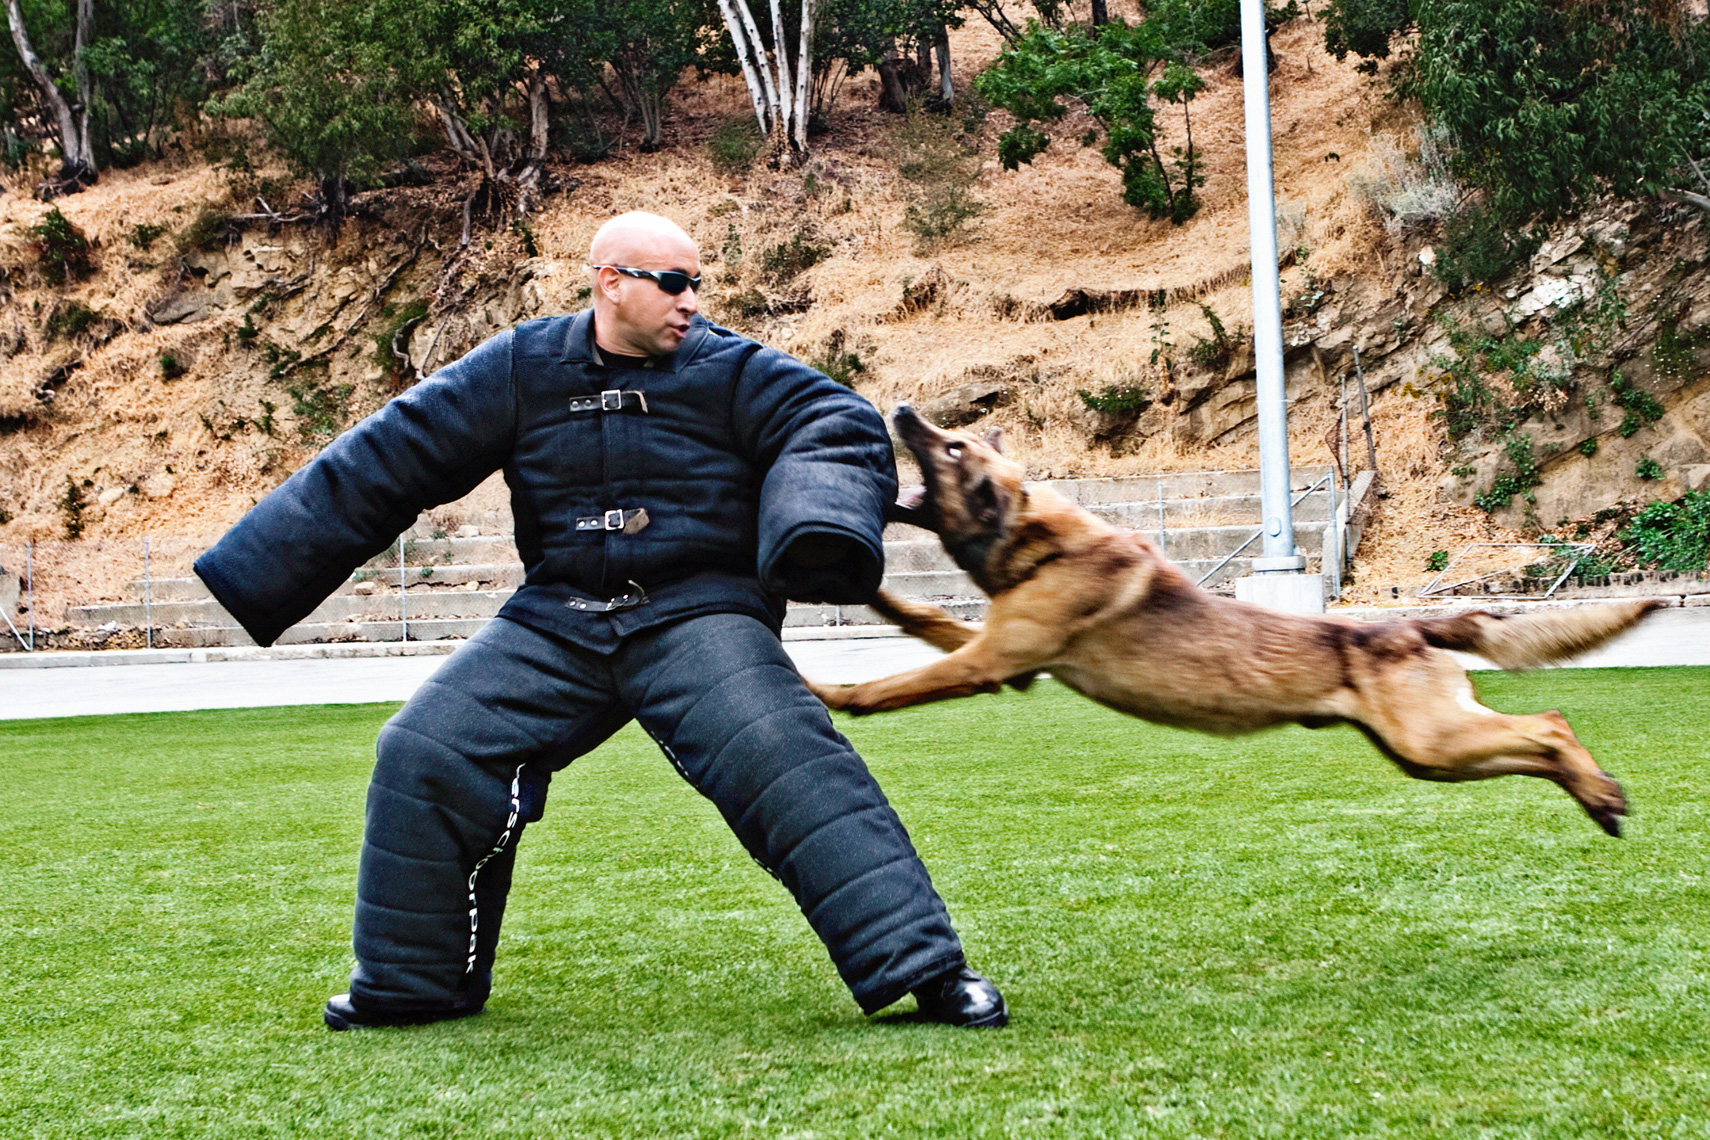 Los Angeles Dog Photography, Michael Brian, LAPD Officer and K-9, Blegian Malinois, Cesar Millan, attack training, Los Angeles Police Department, Cesar